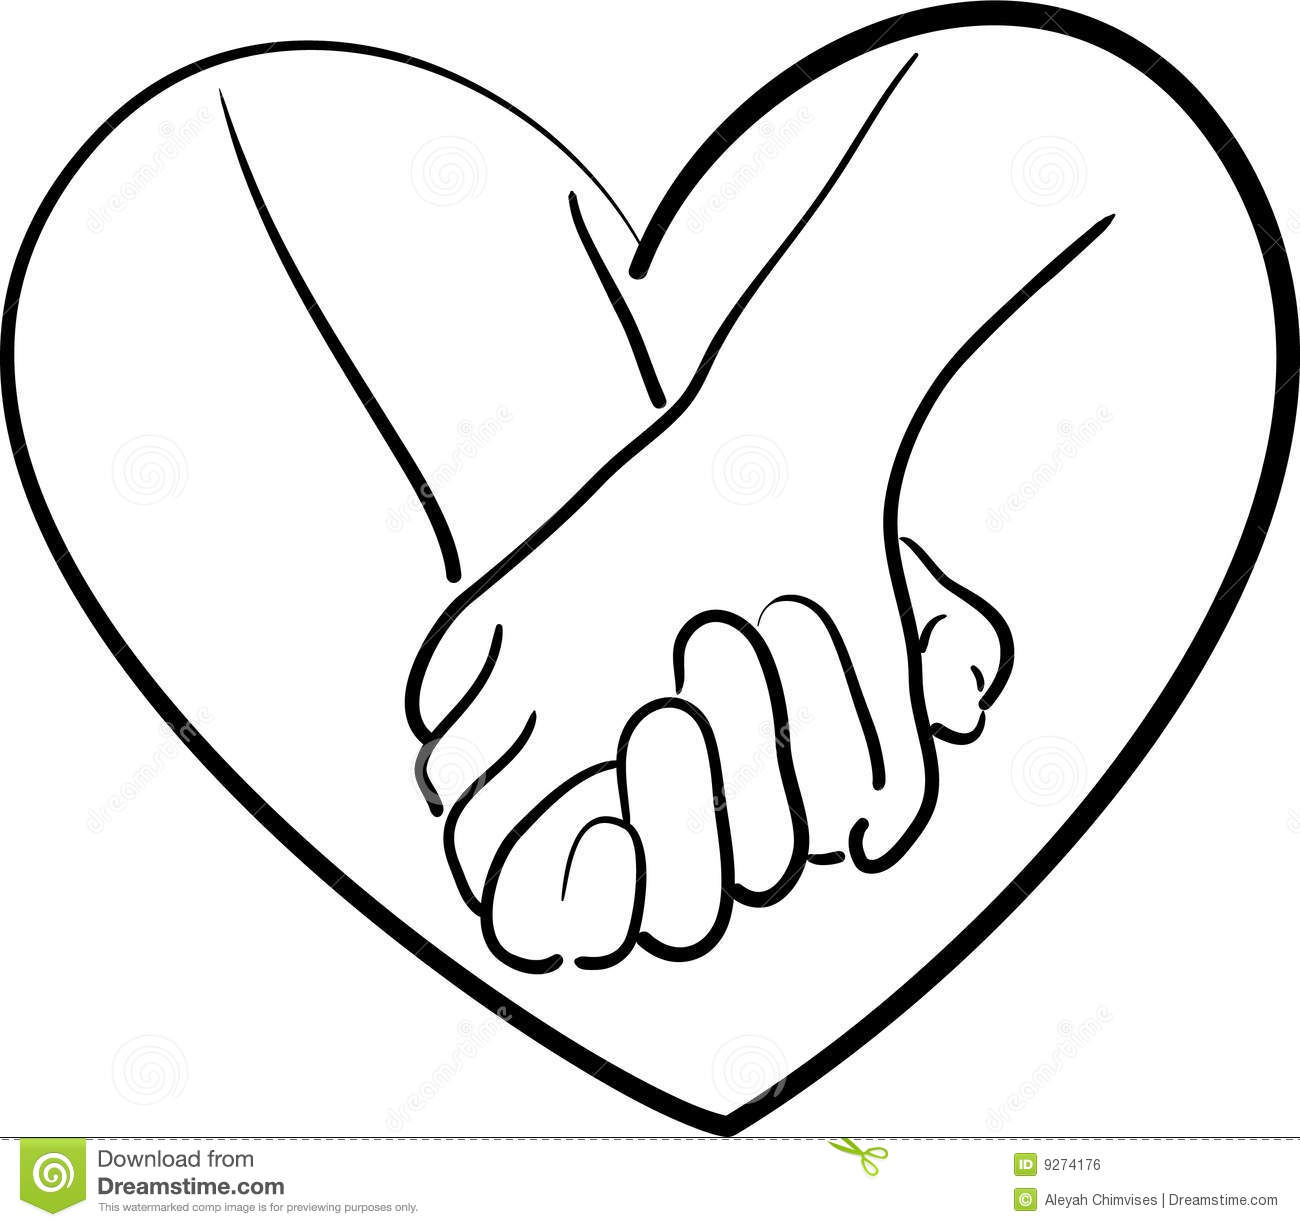 Holding Hands Heart Drawings | Clipart Panda - Free ...